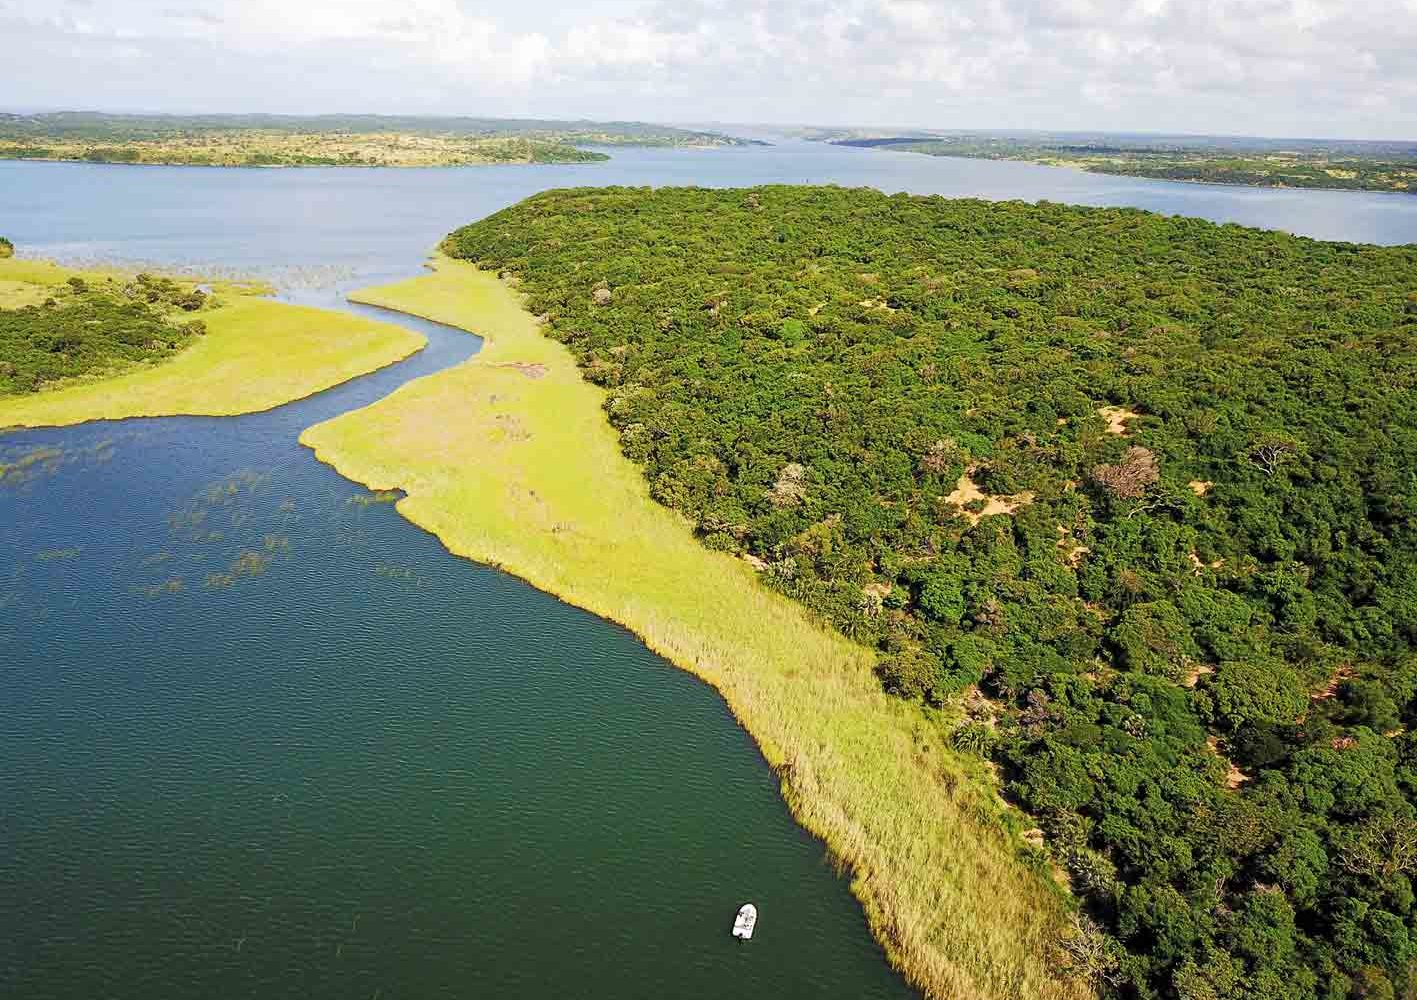 Nhambavale-See, Mozambique